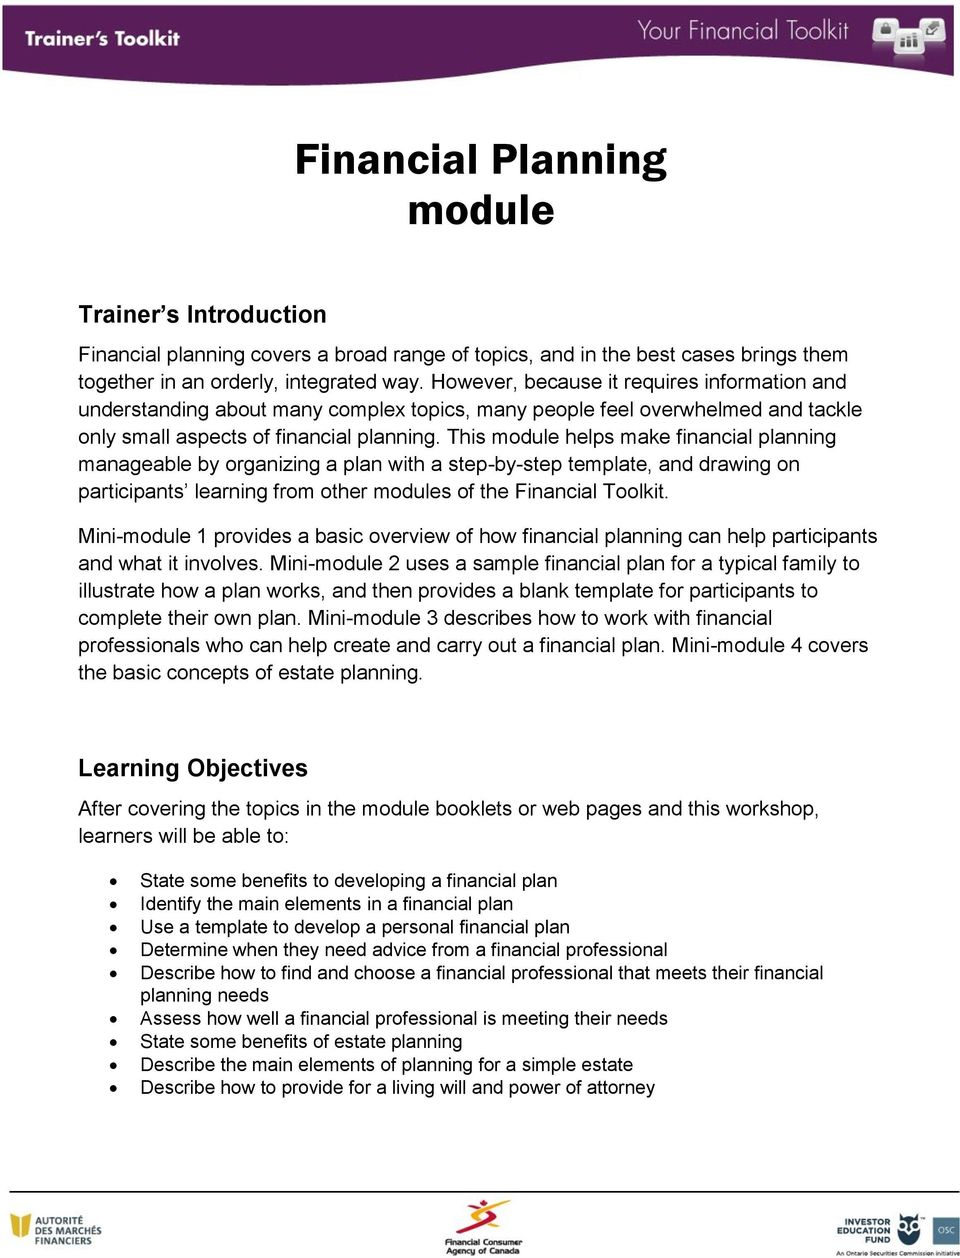 This module helps make financial planning manageable by organizing a plan with a step-by-step template, and drawing on participants learning from other modules of the Financial Toolkit.